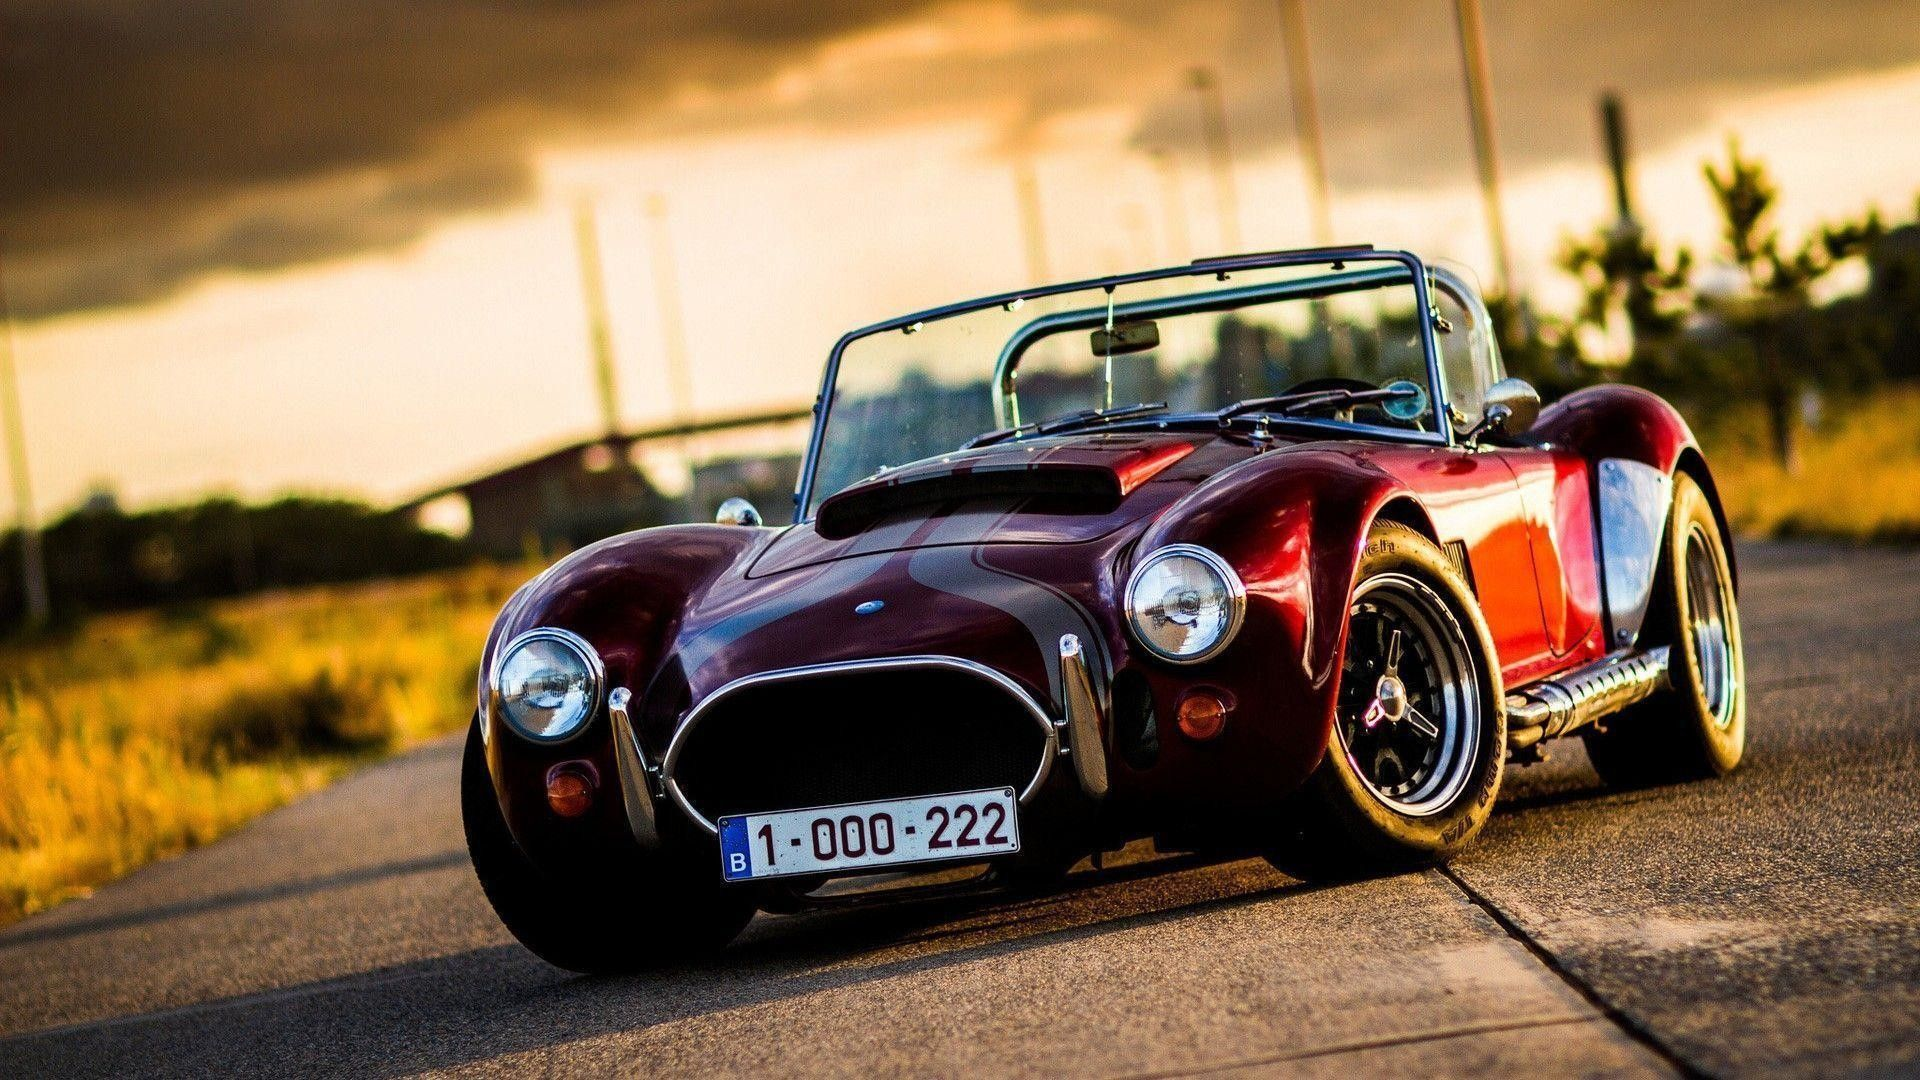 Shelby Cobra Wallpapers Top Free Shelby Cobra Backgrounds Wallpaperaccess